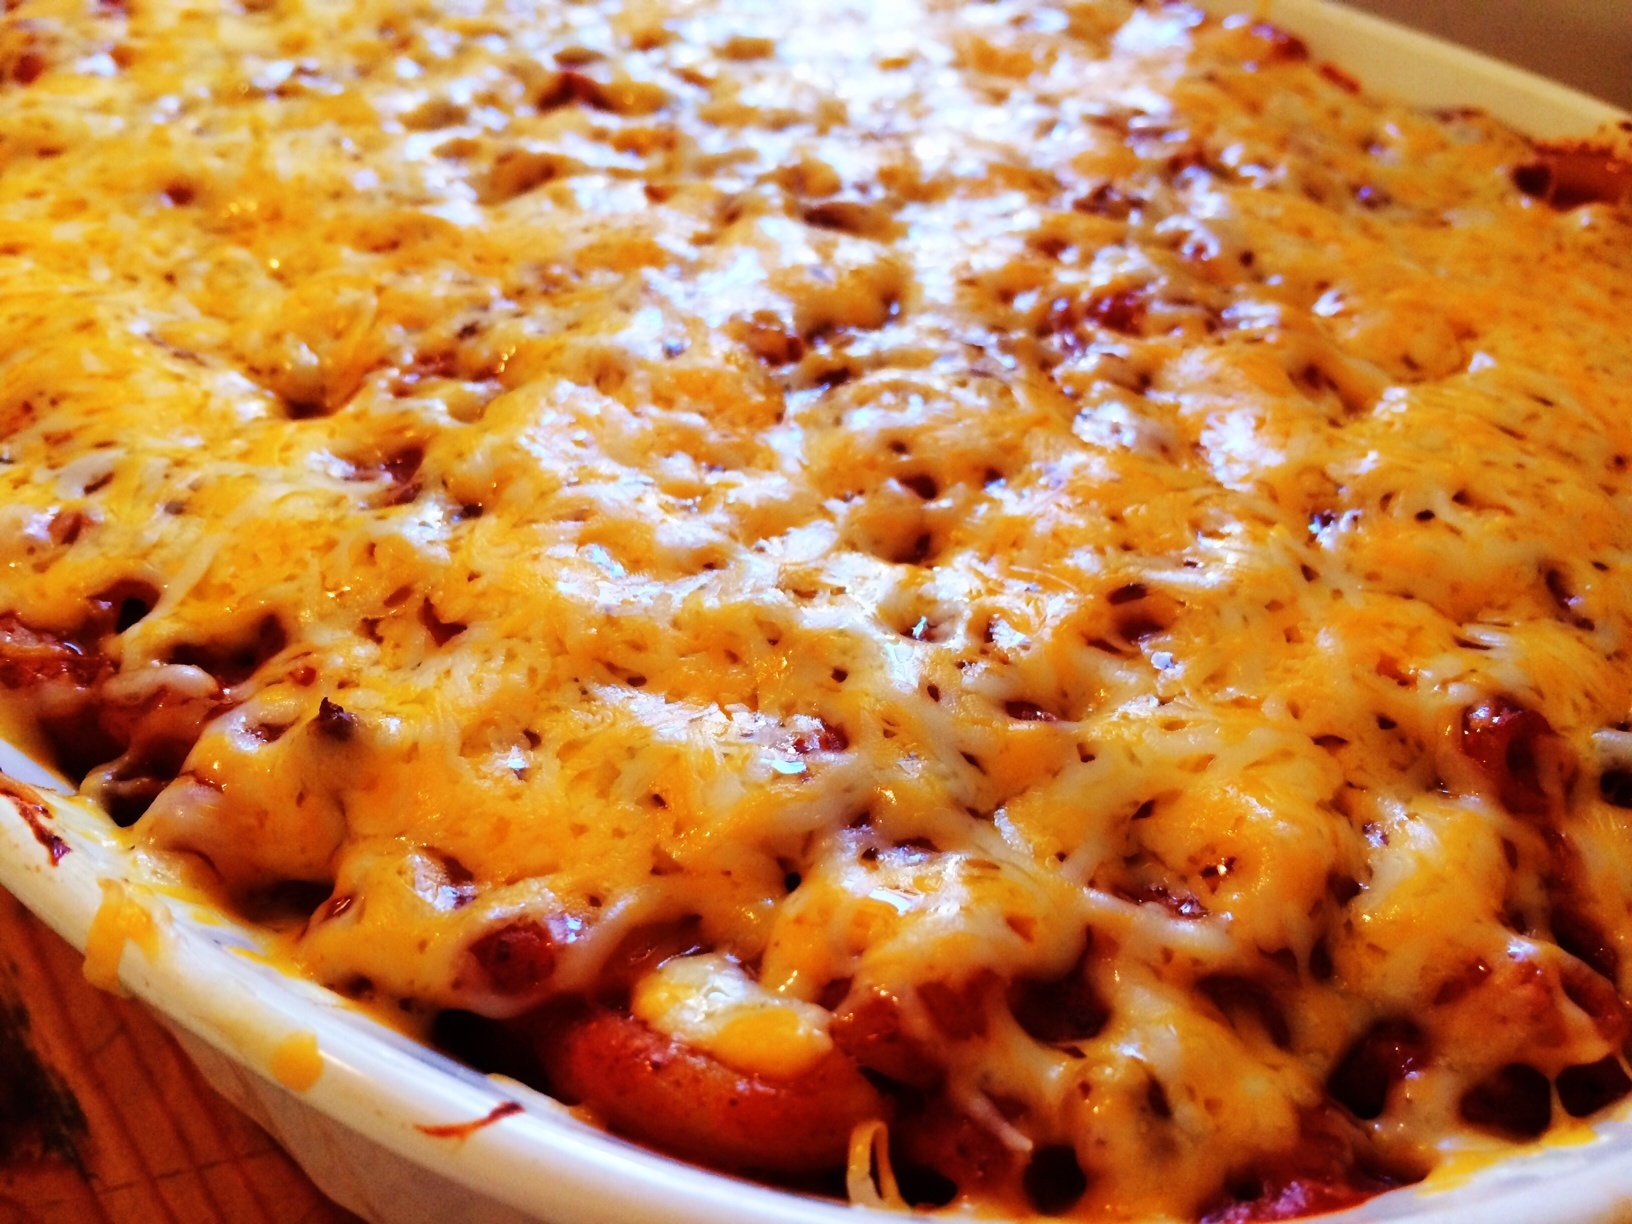 Creamy, Dreamy Chili Mac & Cheese Casserole